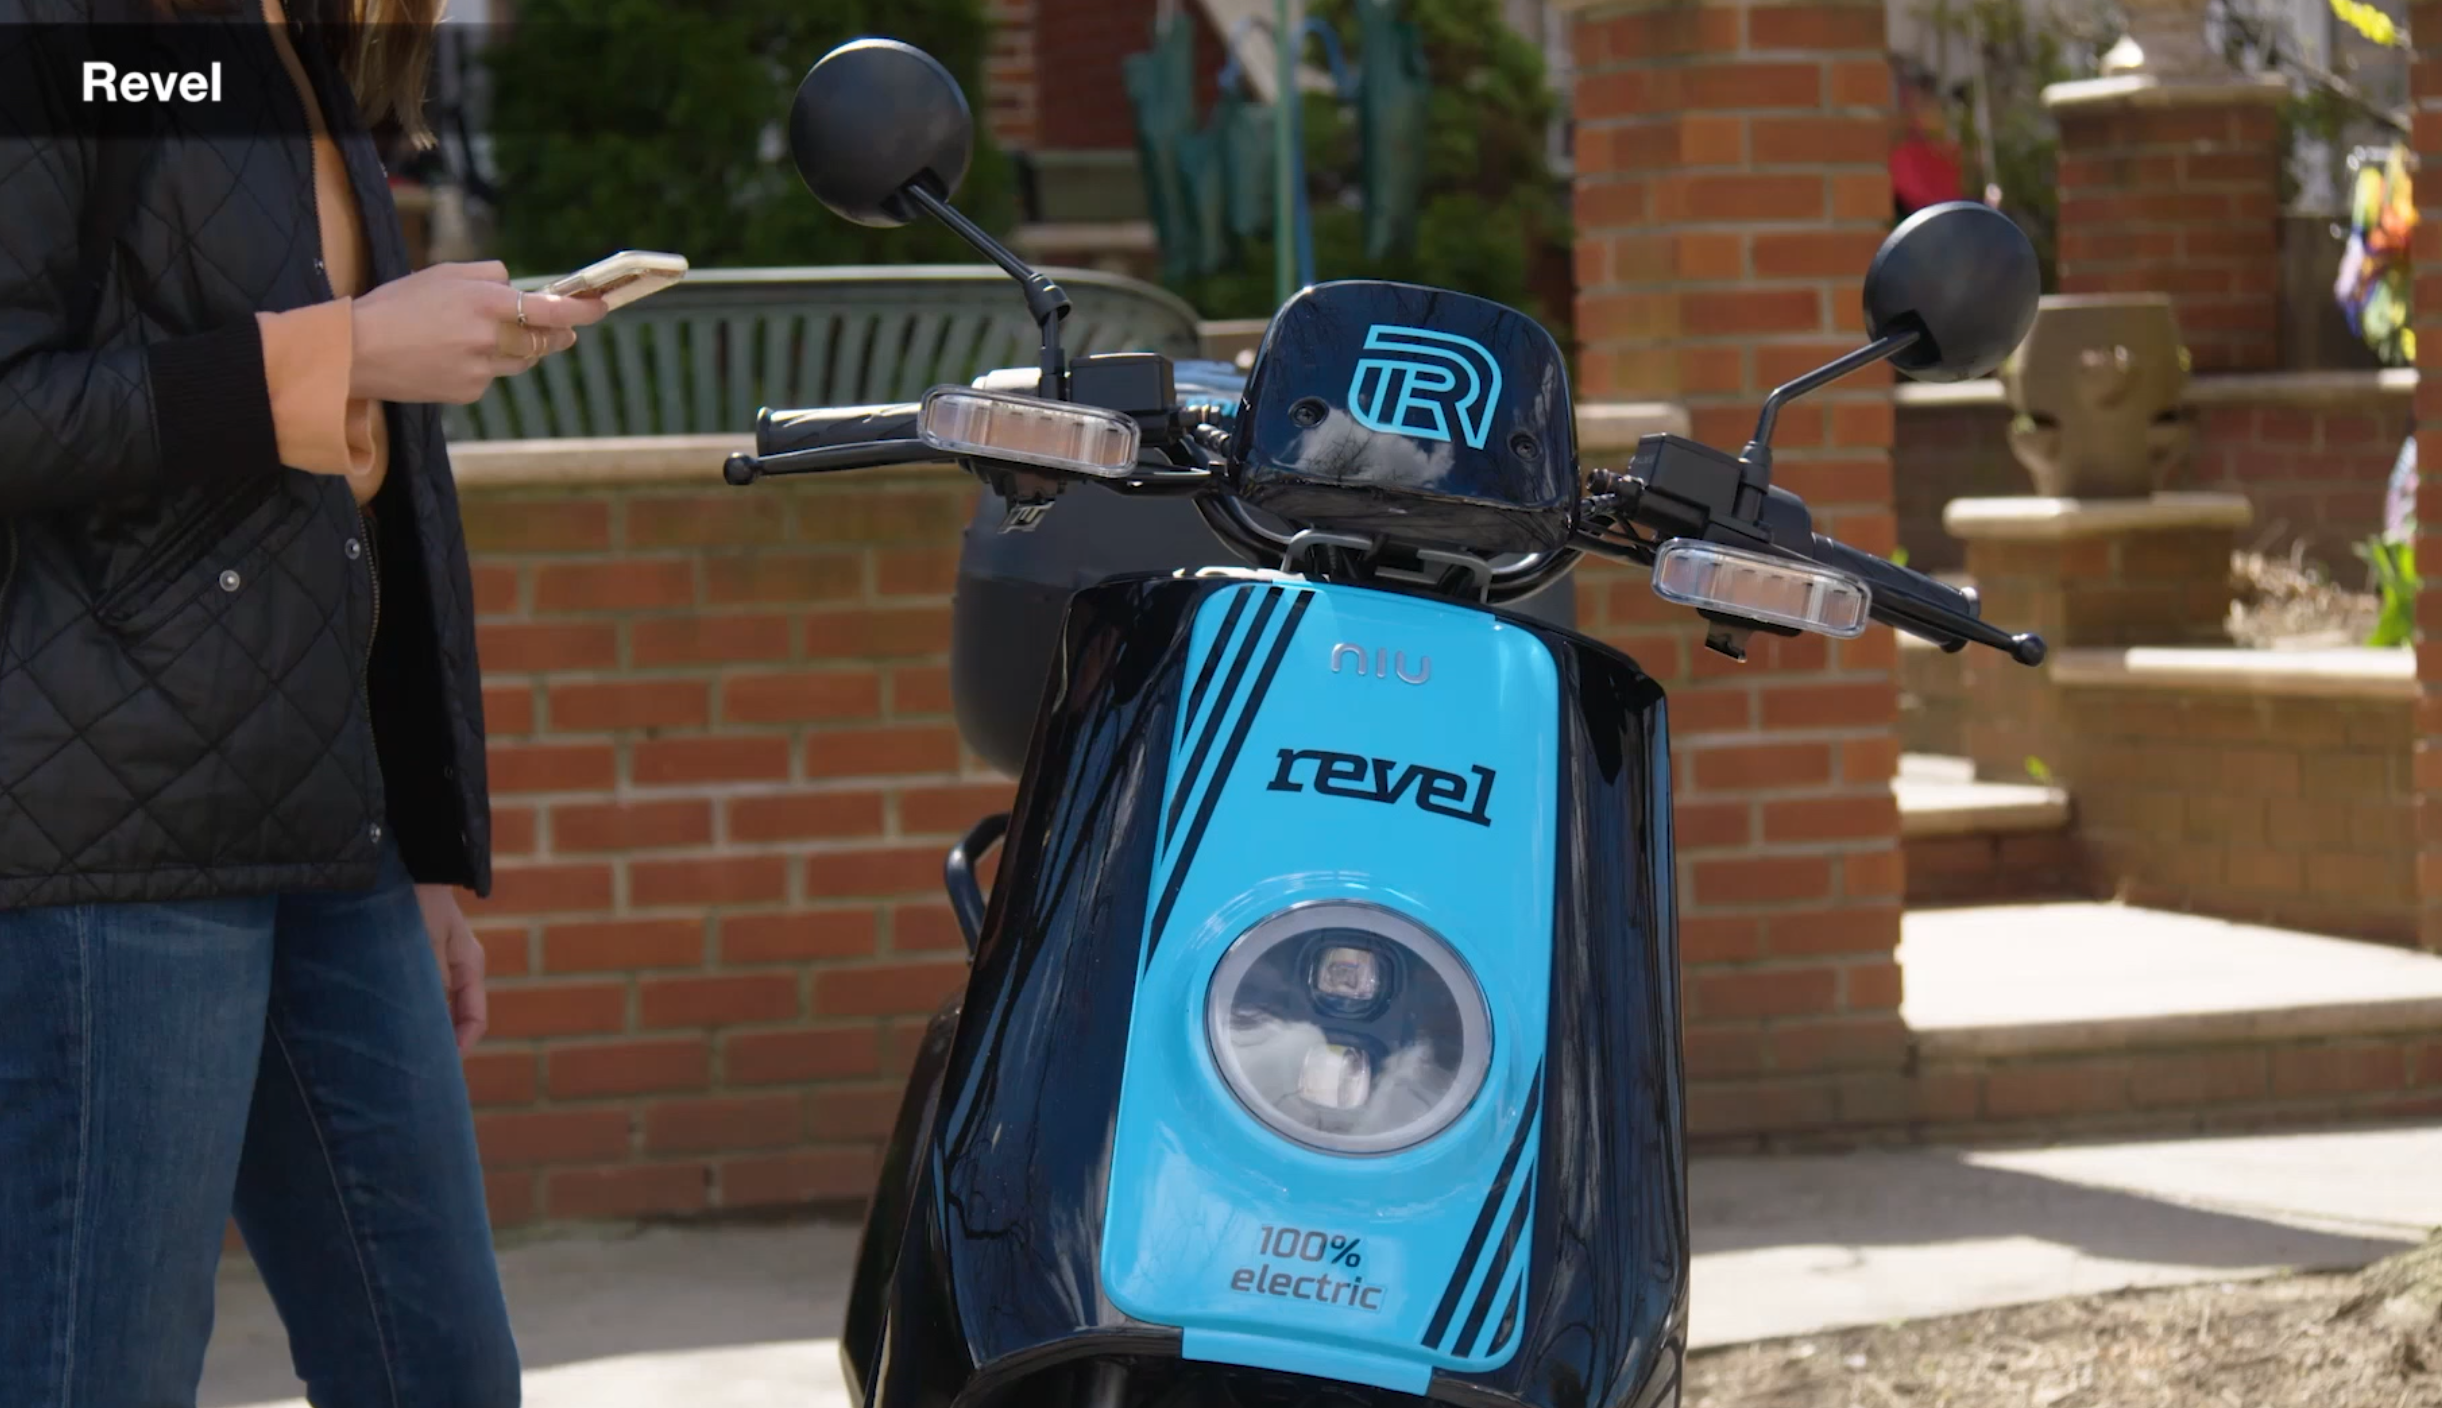 New on-demand transportation popping up in cities: electric